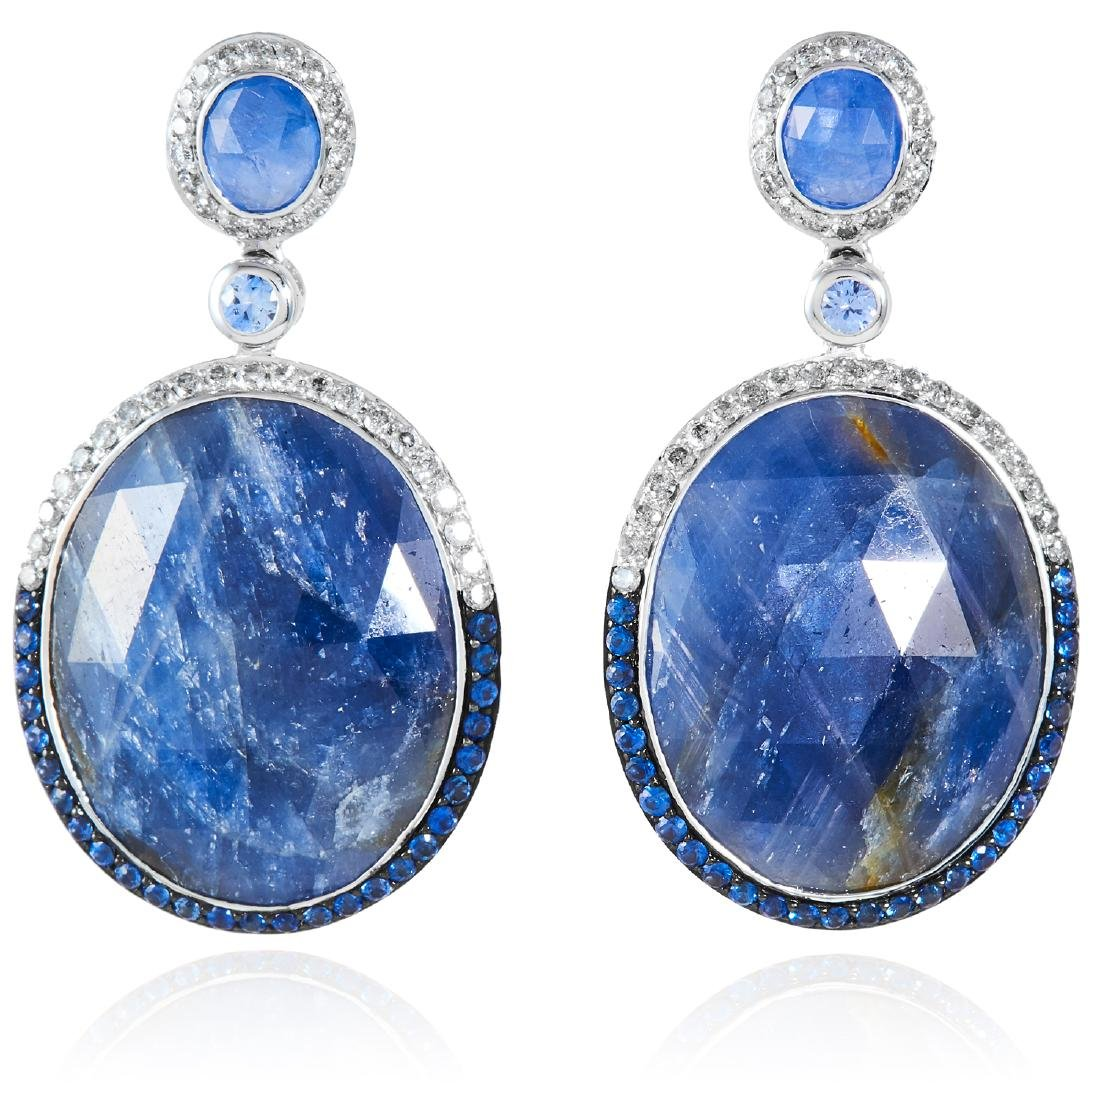 A PAIR OF SAPPHIRE AND DIAMOND EARRINGS in 18ct white